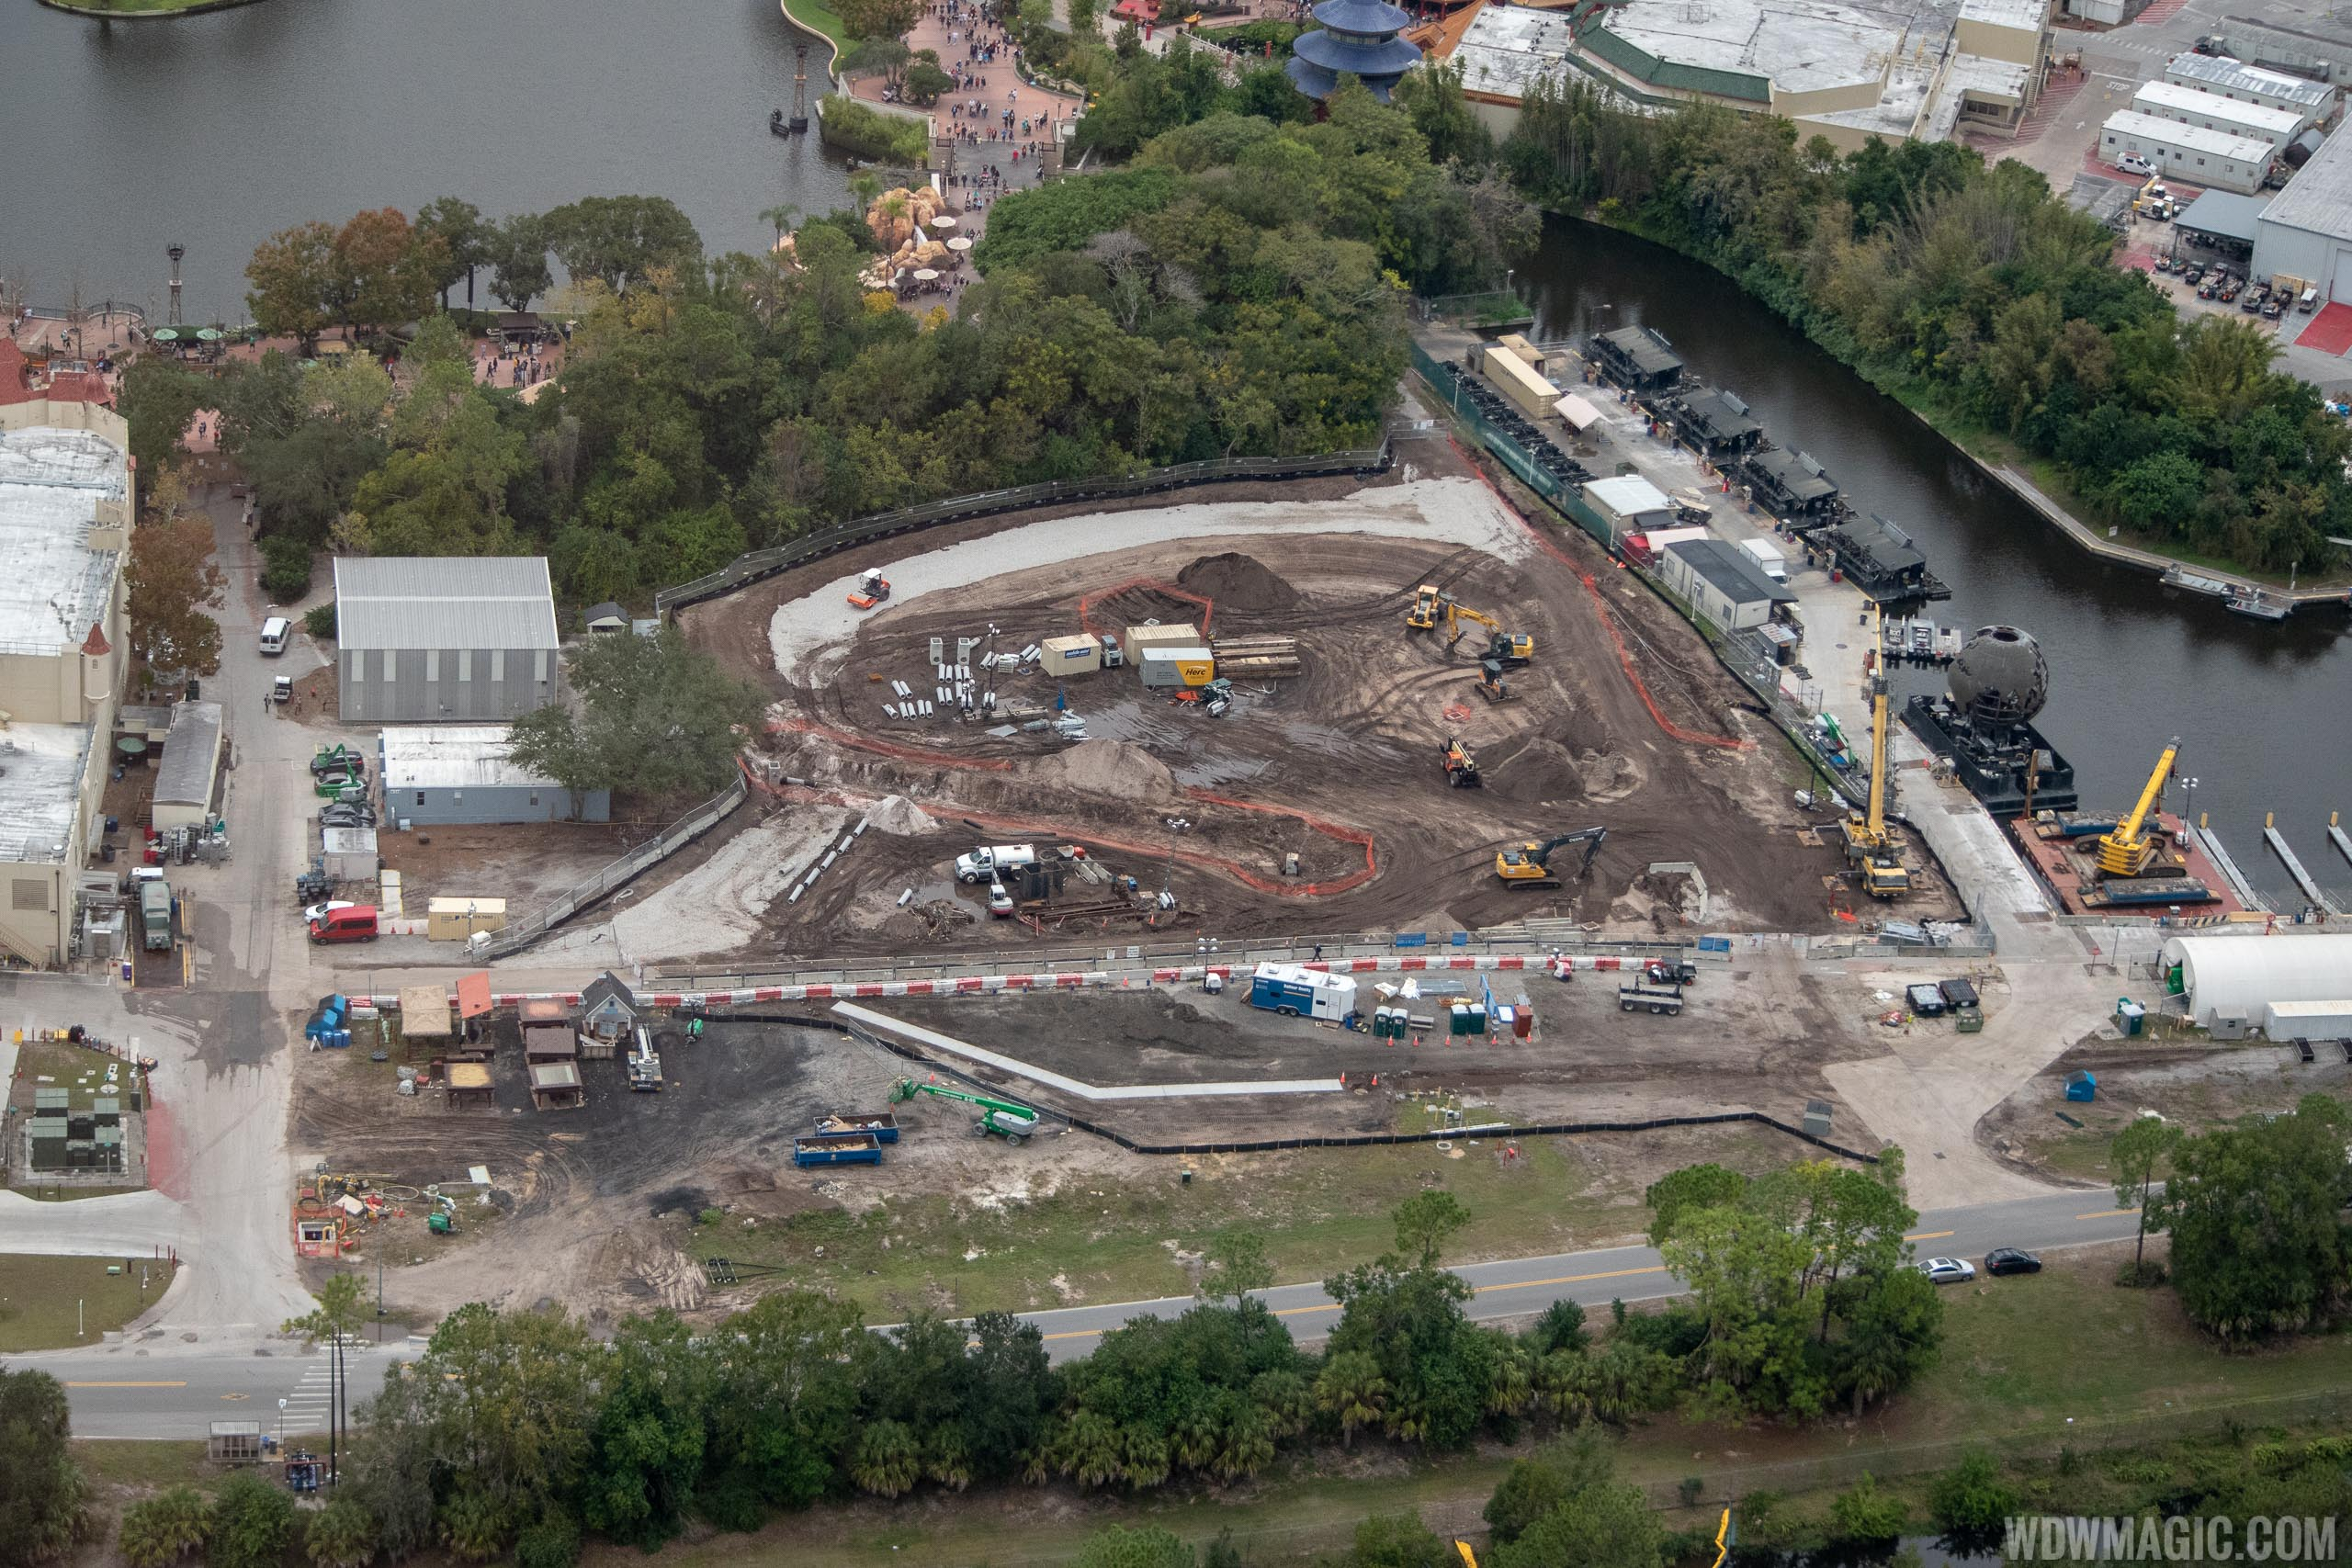 Aerial view of Epcot firework marina and construction site for future show preparations. Photo by @cchard